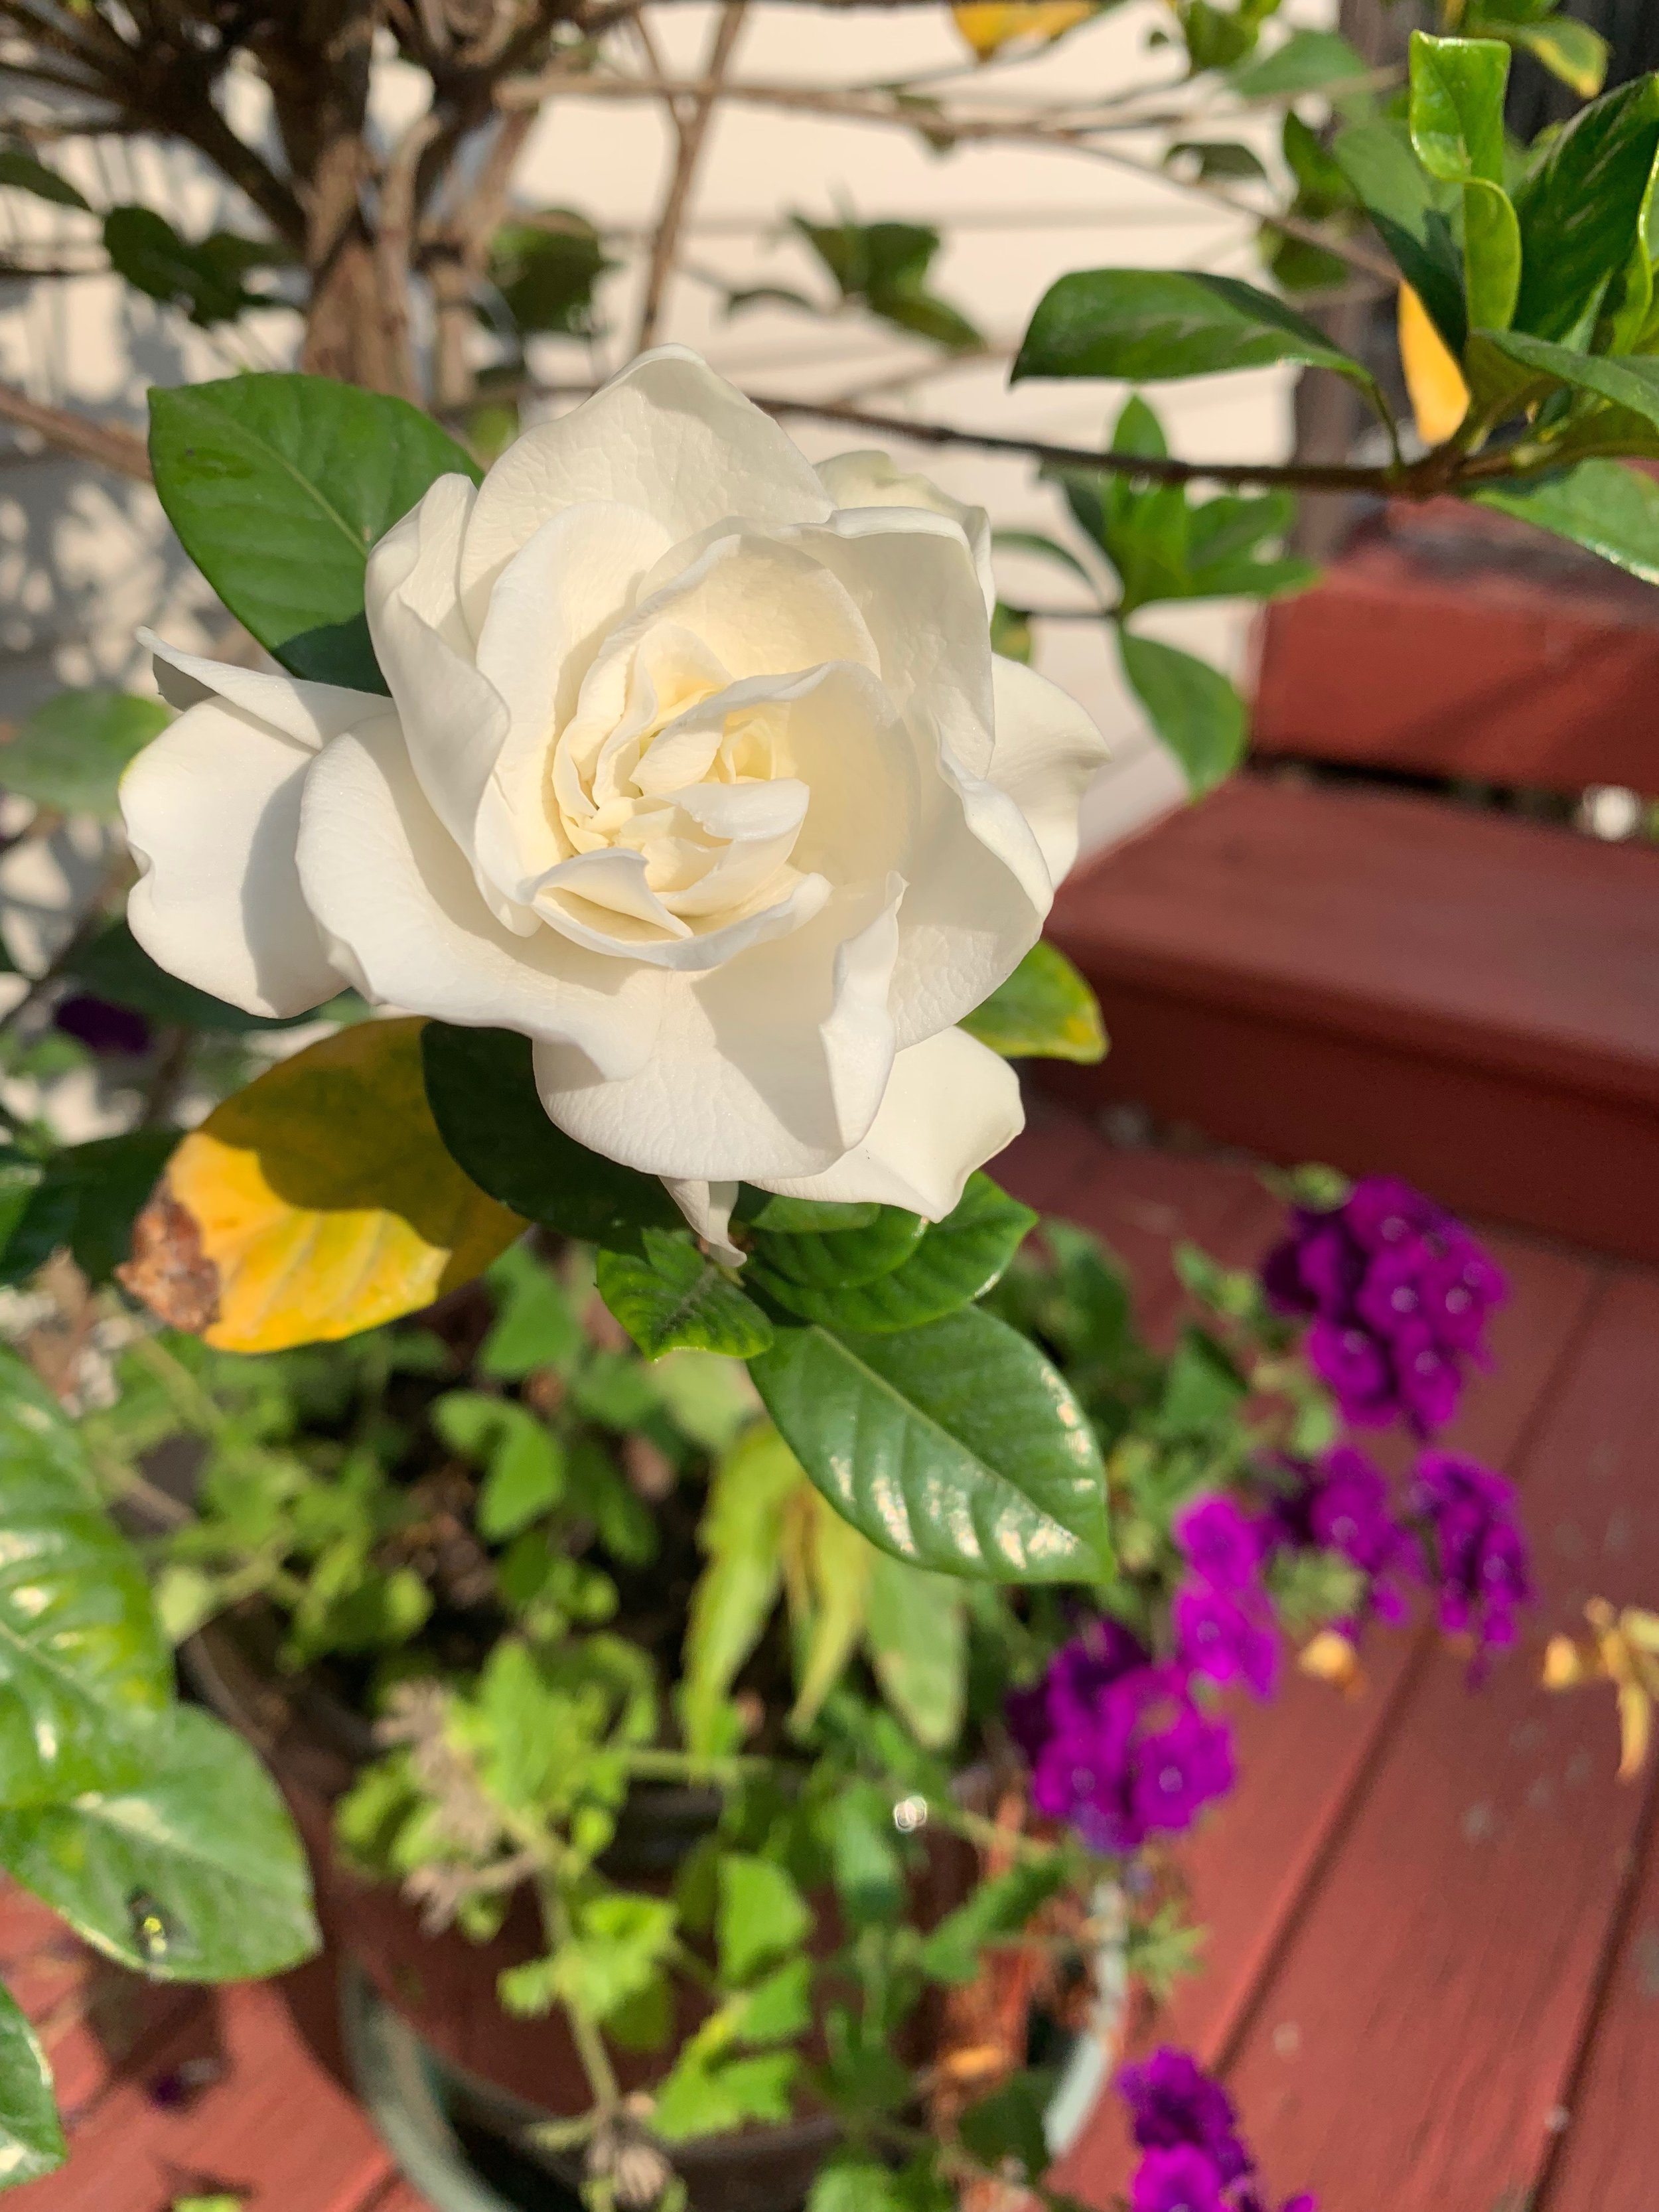 Although I did go for my morning walk today, my day 11 of  #30daynaturechallenge  image is from my own backyard. My pretty gardenia, given to me this spring by my mother, bloomed her fragrant flowers early, then stopped and I thought that was it for this year. I'd bring her indoors before the first frost and hope she blooms next year. I was lucky because yesterday, she graced us with one more bloom and it smells glorious.